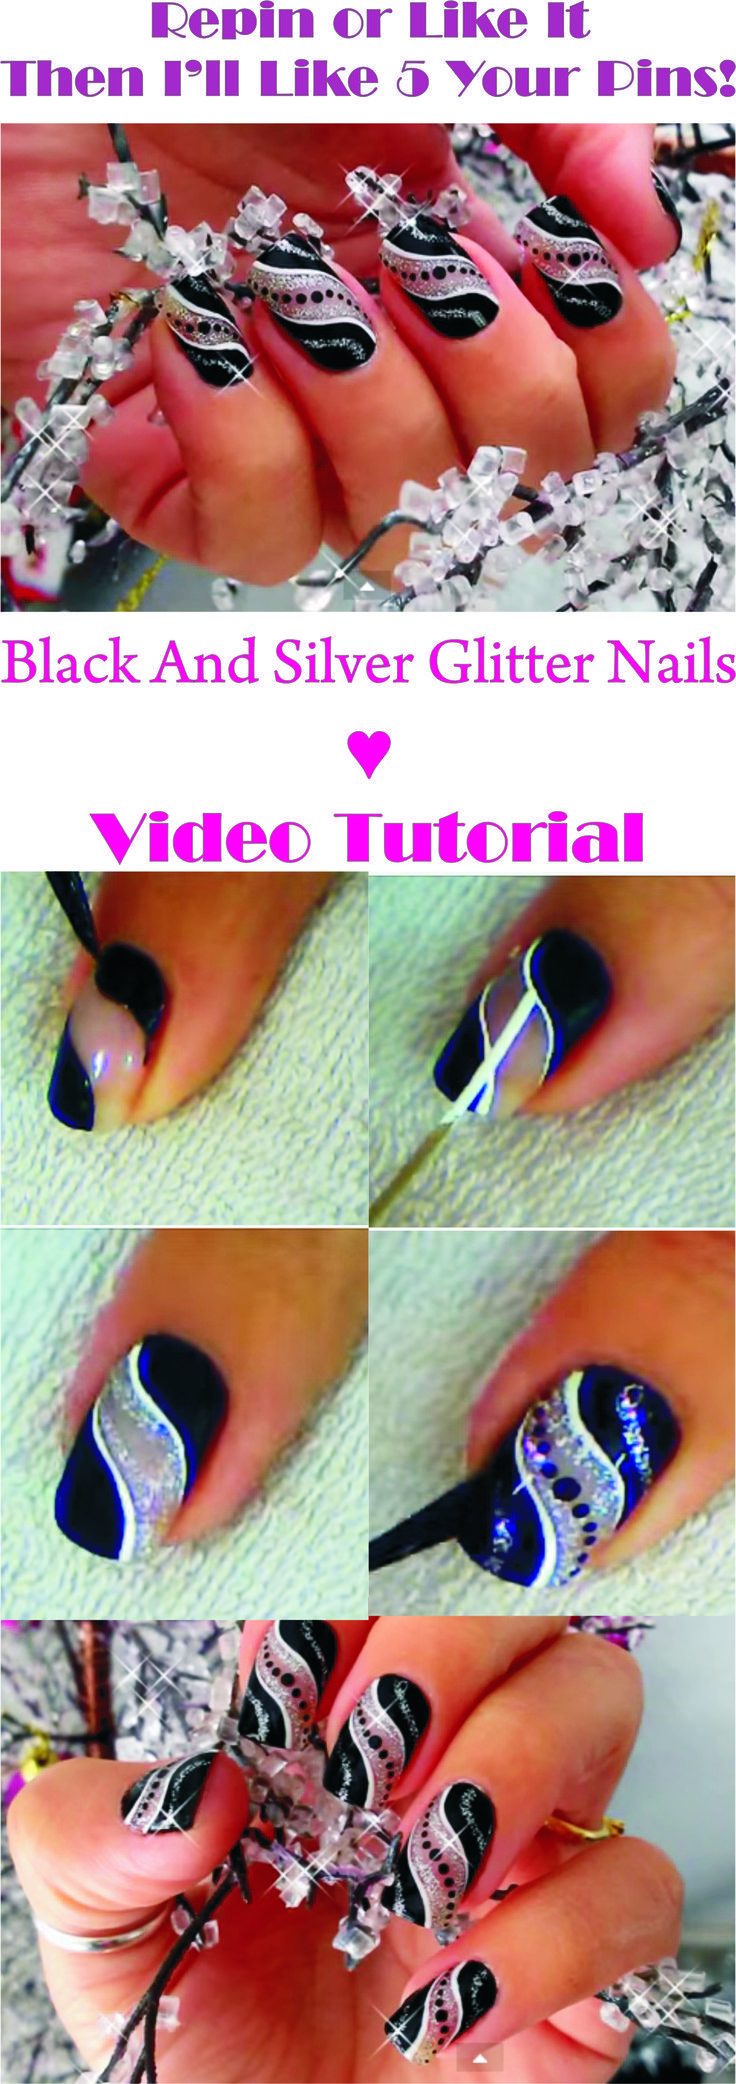 Repin Or Like It - And I'll Like 5 Your Last Pins!!! ♥ Super Easy Party Nail Art…